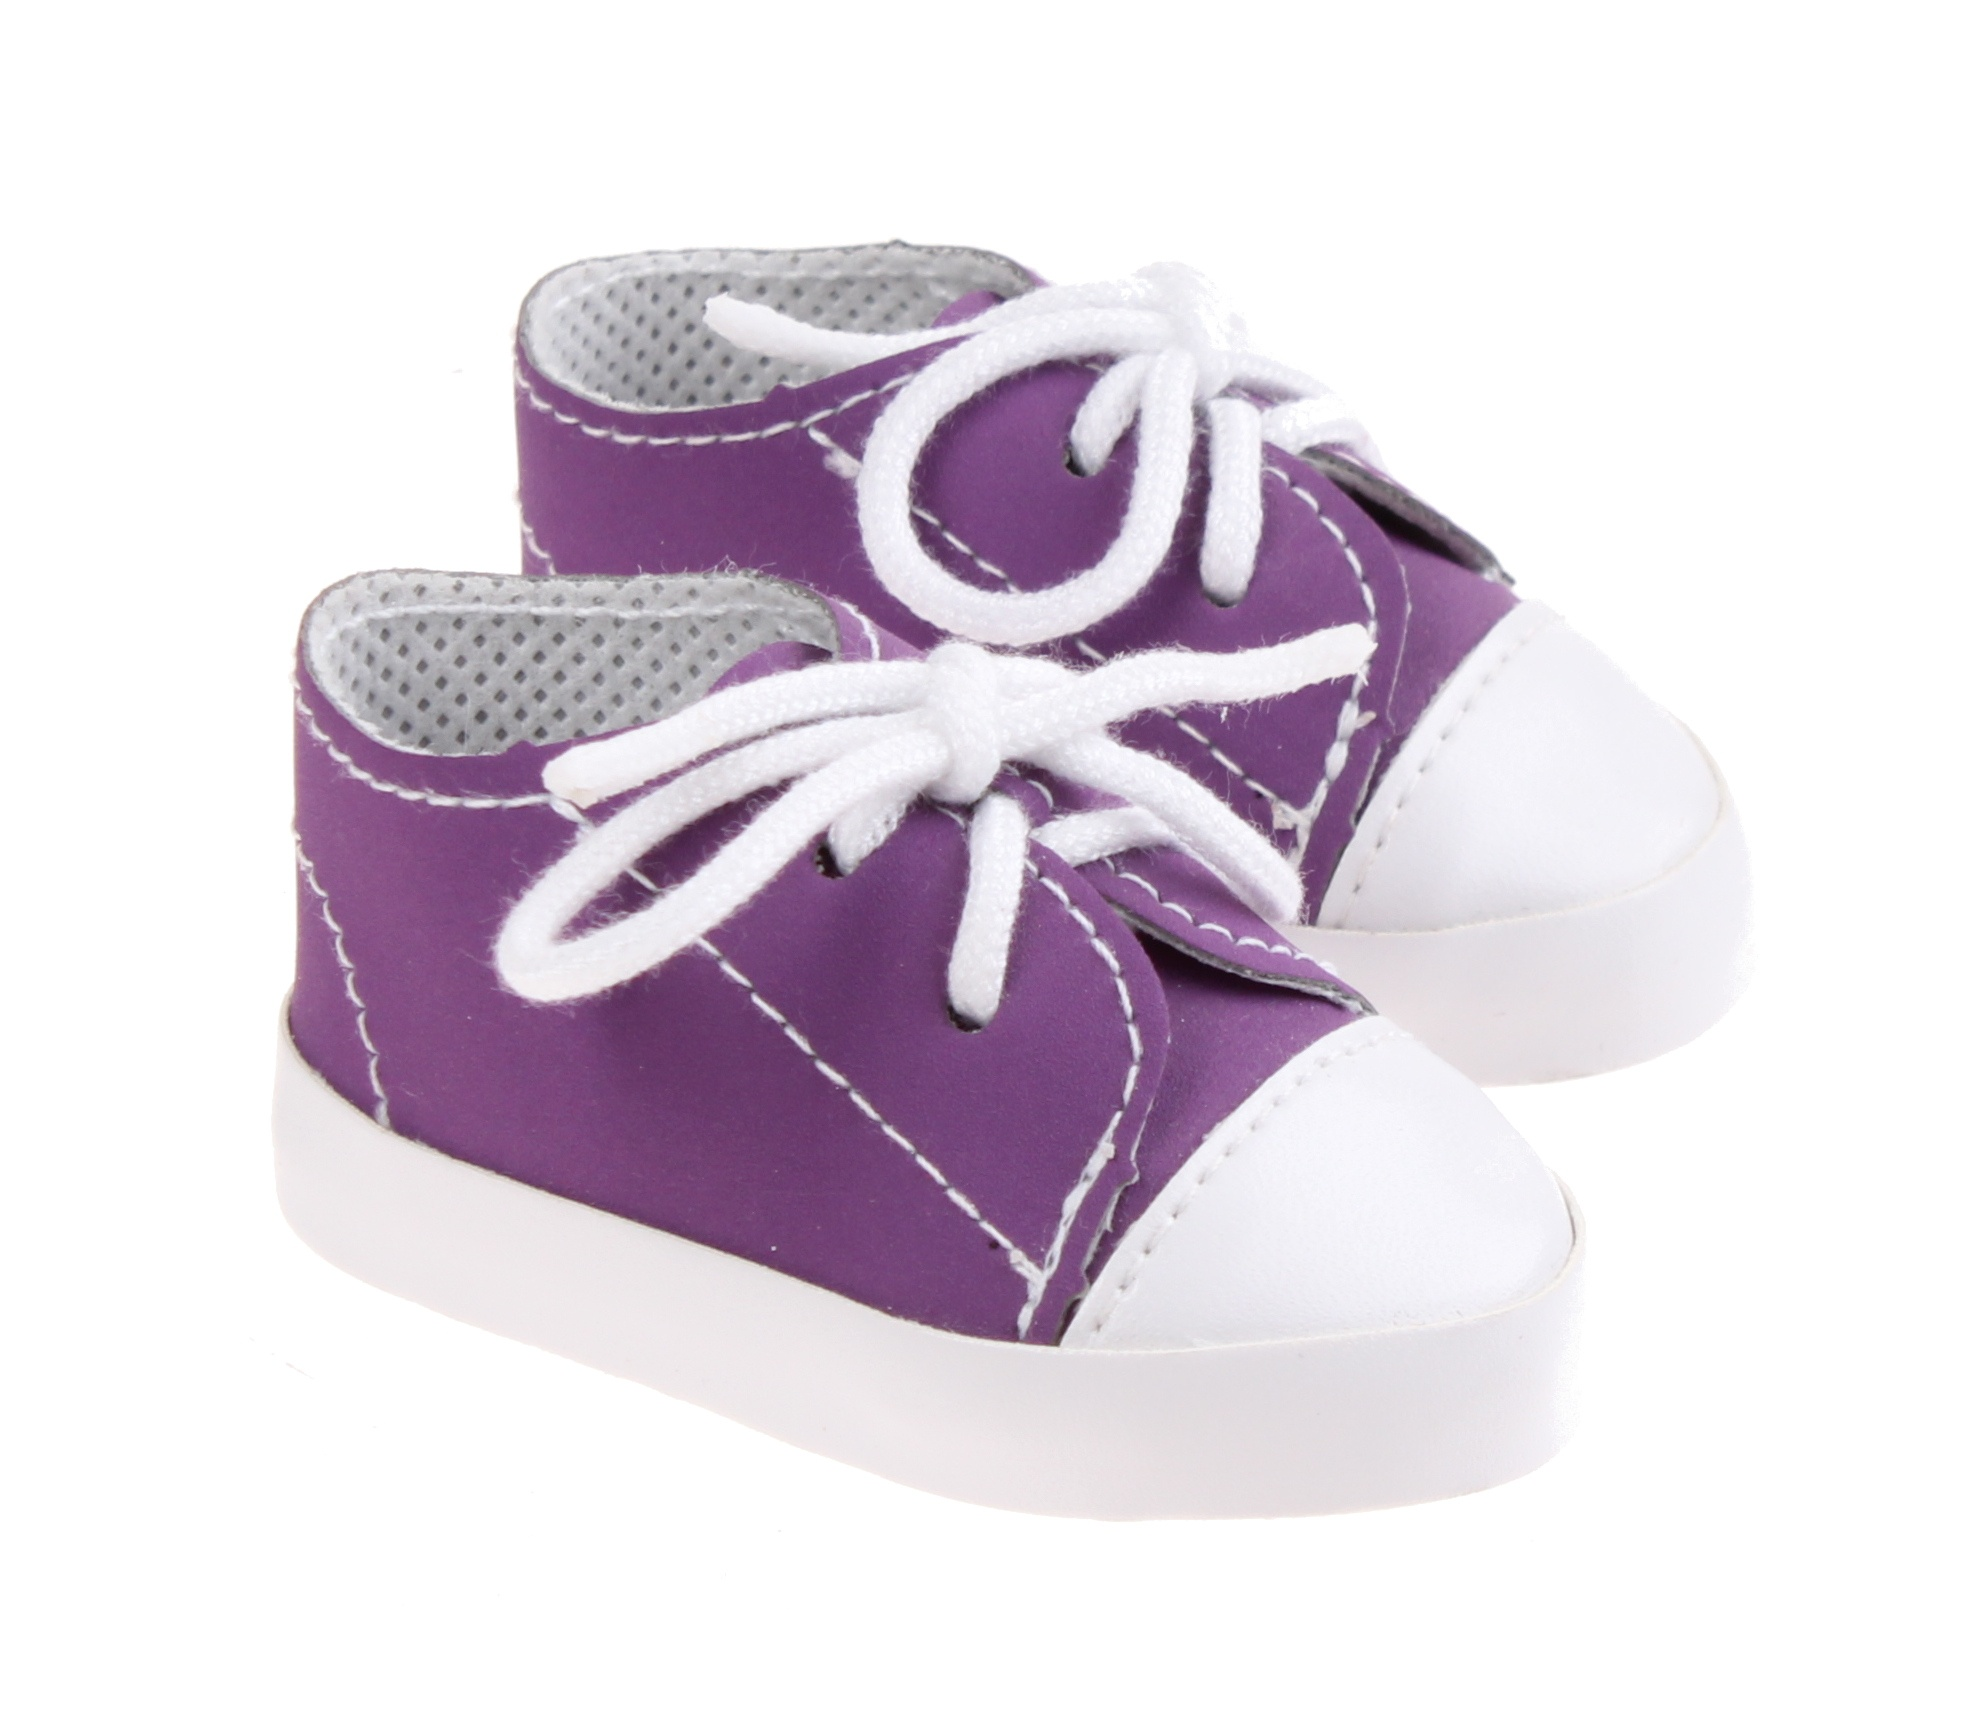 bbd5227934405 doll shoes purple for doll of 39/41 cm